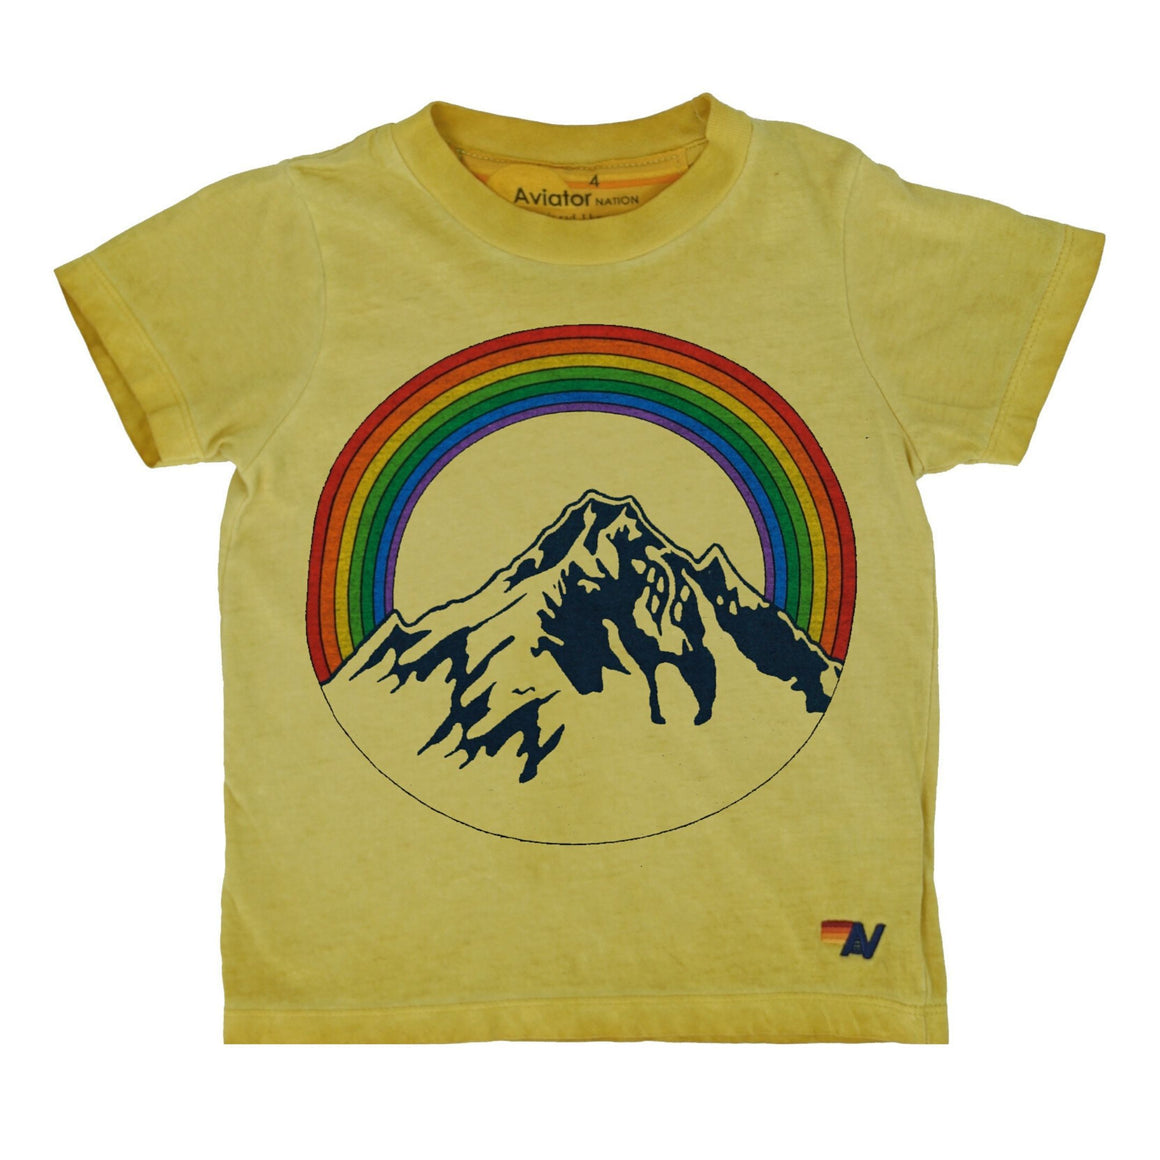 Aviator Nation - Kid's Mountain Rainbow Tee- Vintage Gold Nugget Short Sleeve Shirts Aviator Nation